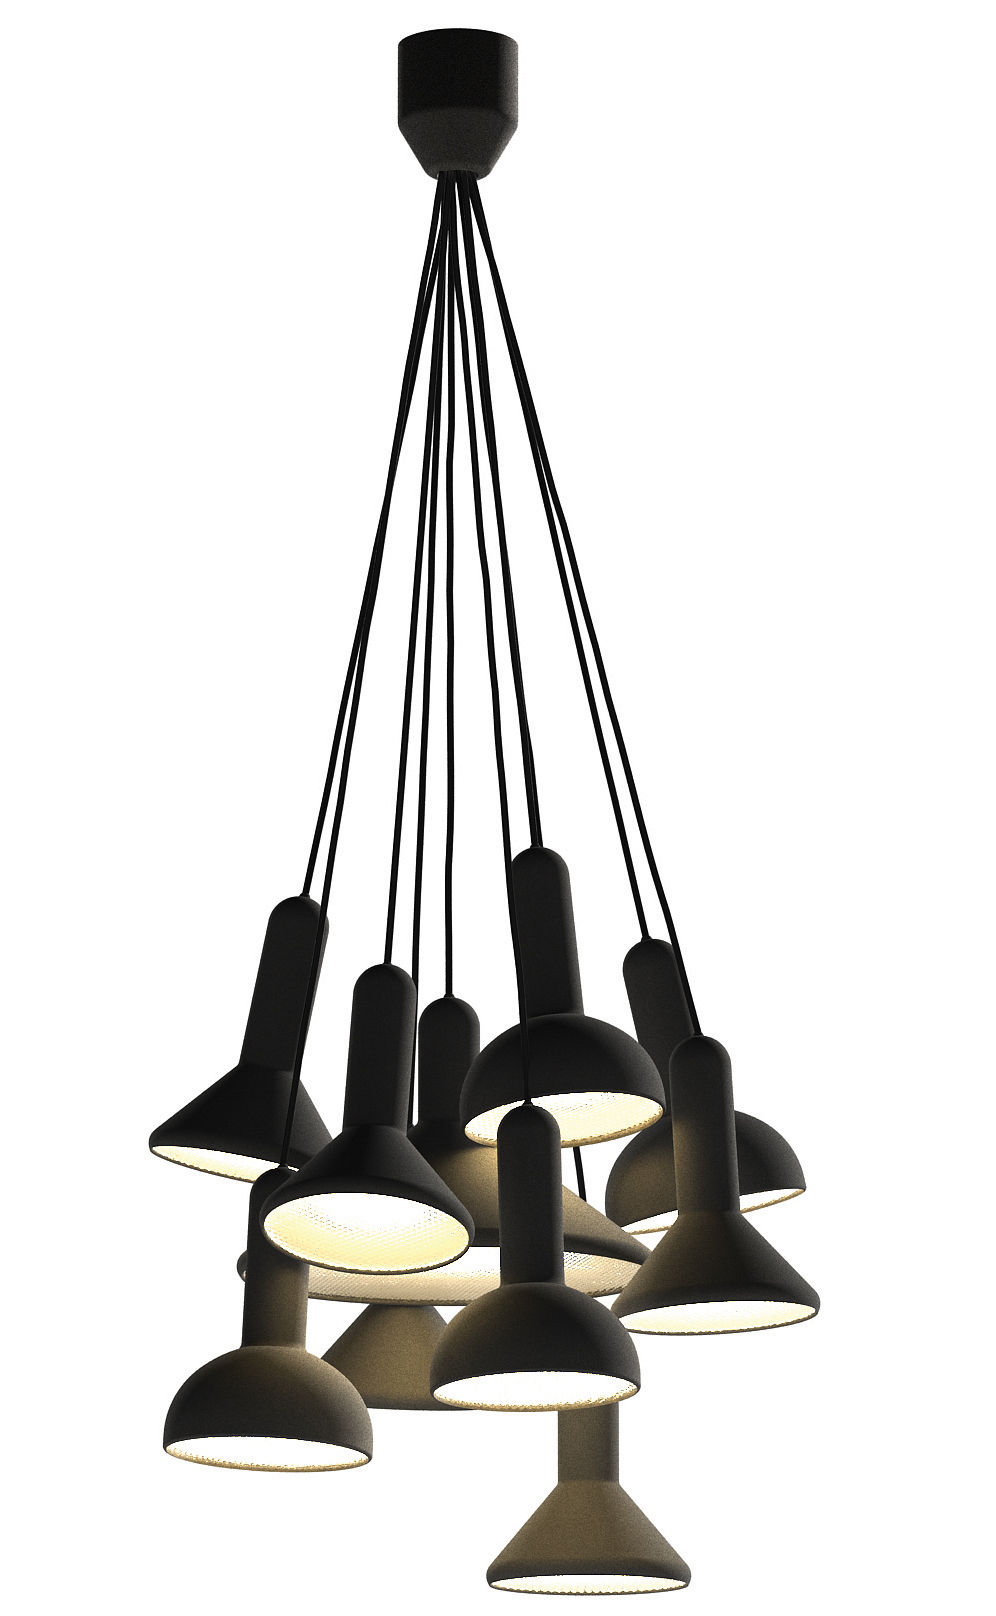 Illuminazione - Lampadari - Sospensione Torch Light - ensemble di 10 lampade a sospensione di Established & Sons - Nero - PVC